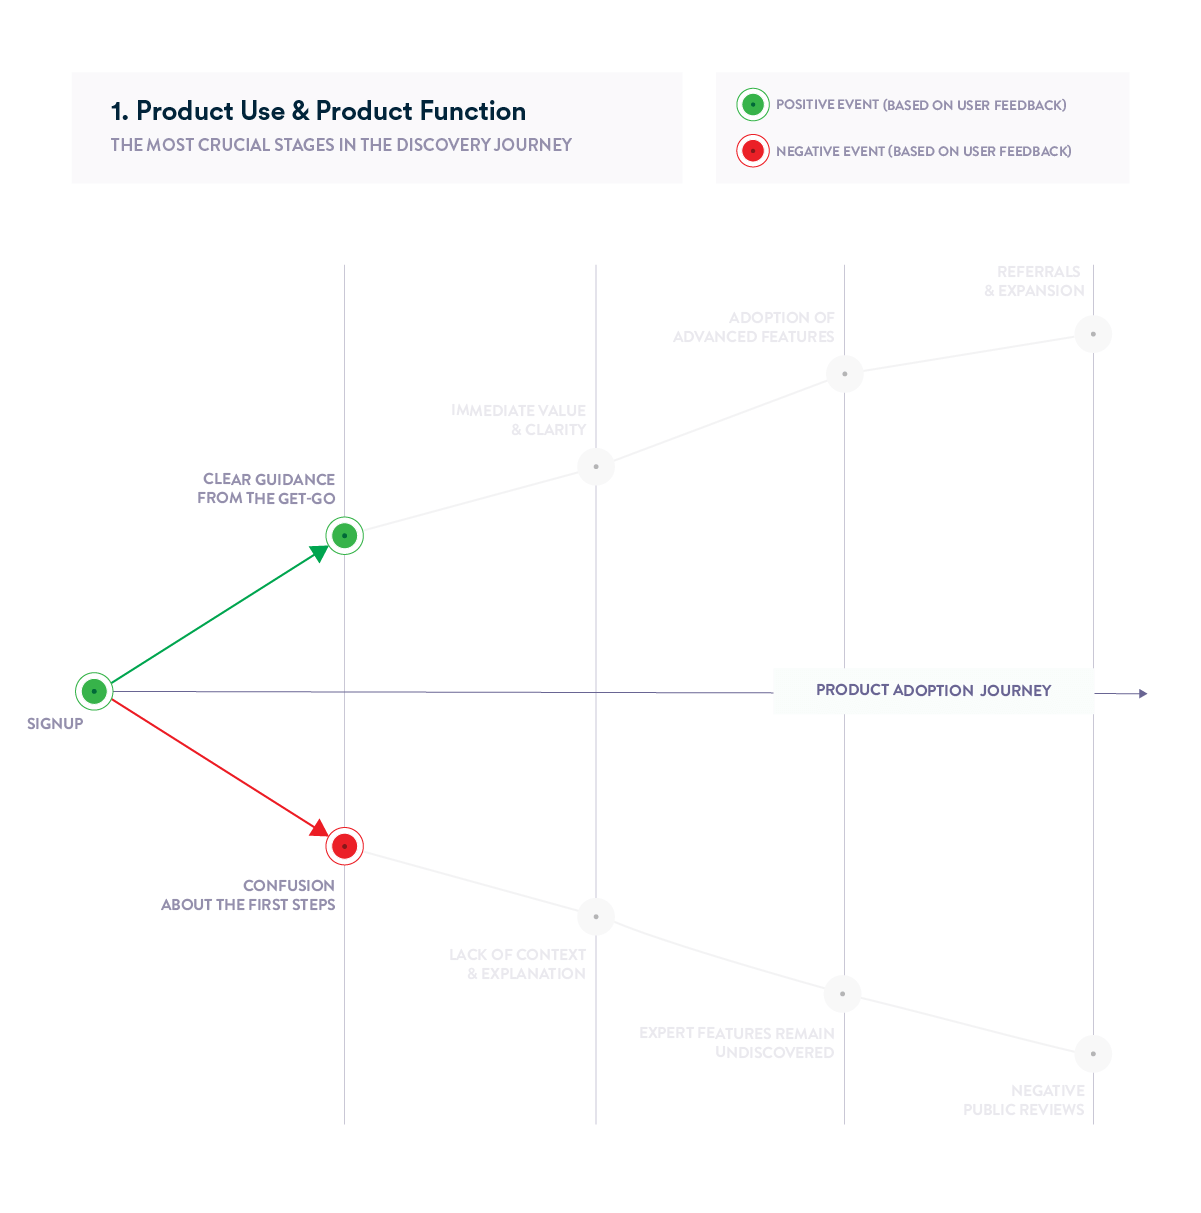 Product Adoption Journey Chart - Product Use and Product Function